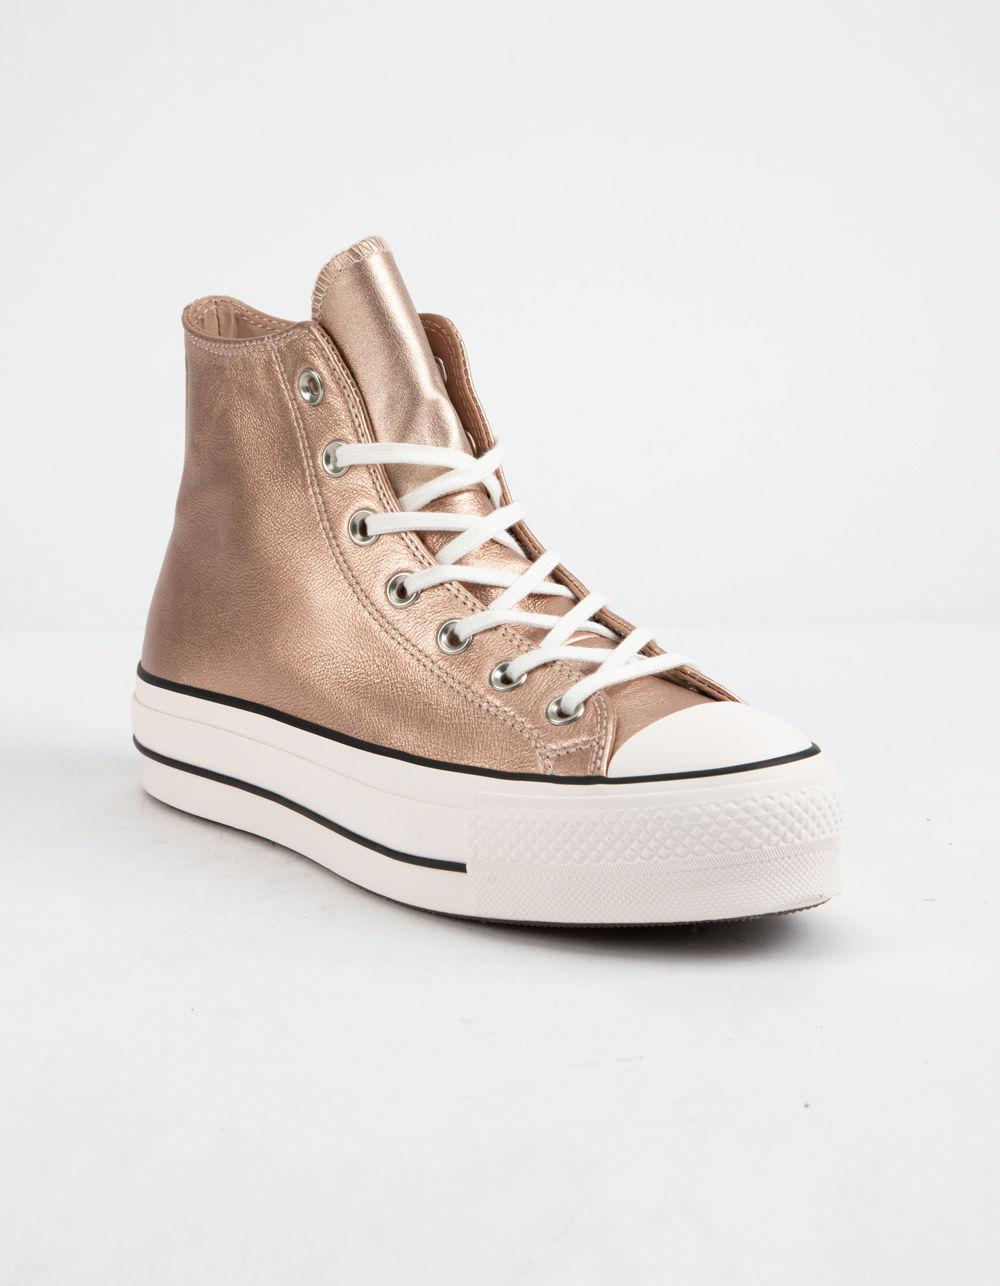 a538bfa3796341 Lyst - Converse Chuck Taylor All Star Lift Particle Beige   White Womens  High Top Shoes in Natural